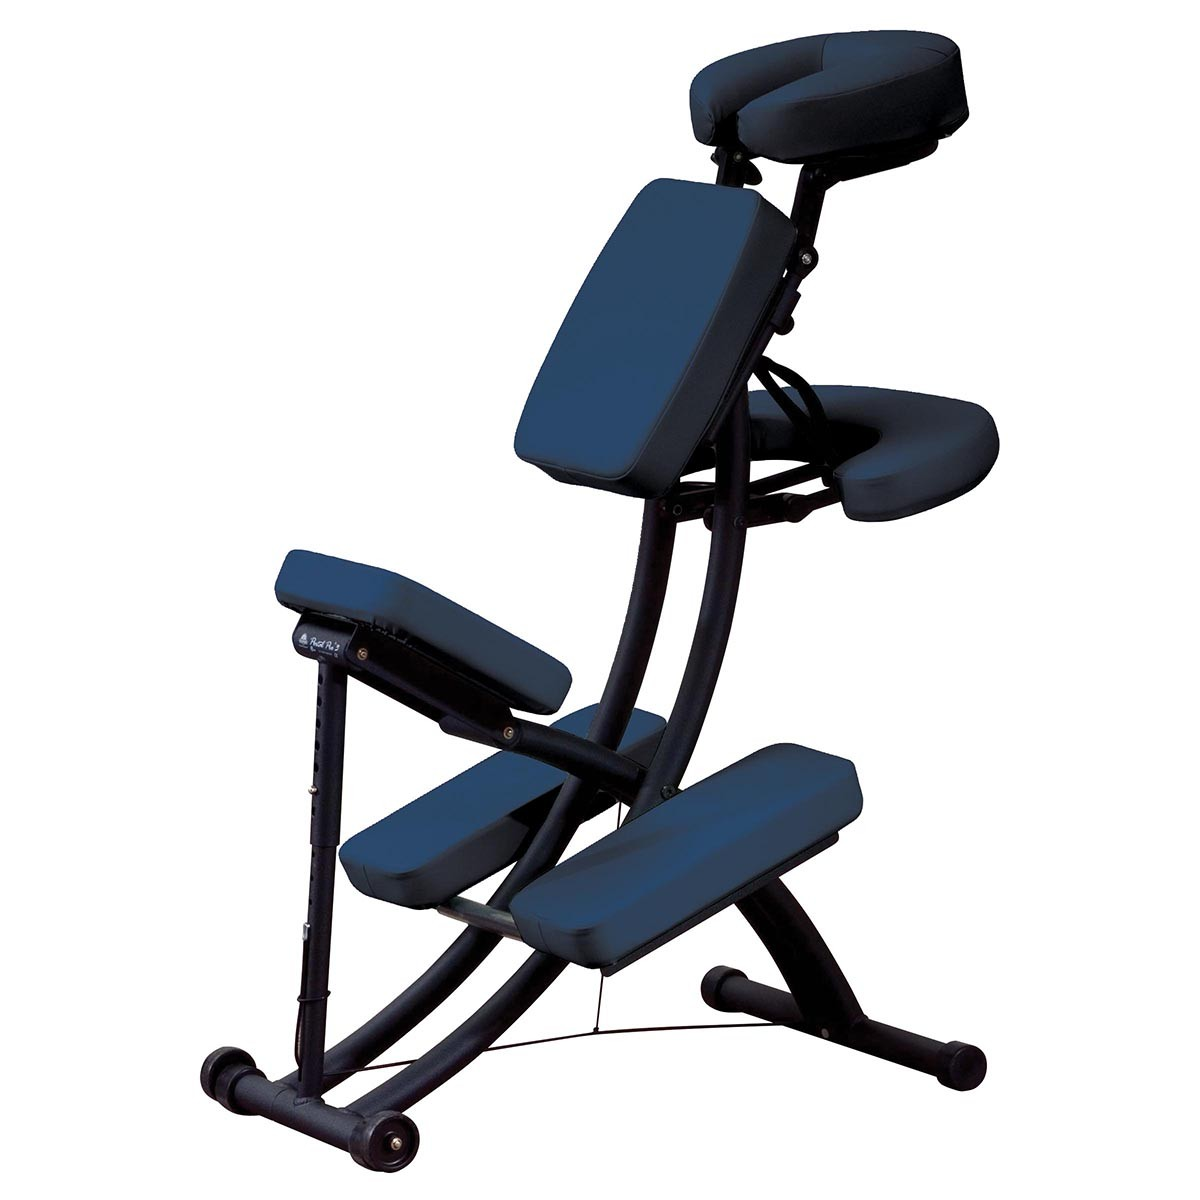 Chaise De Massage Prix La Chaise De Massage Oakworks Portal Pro